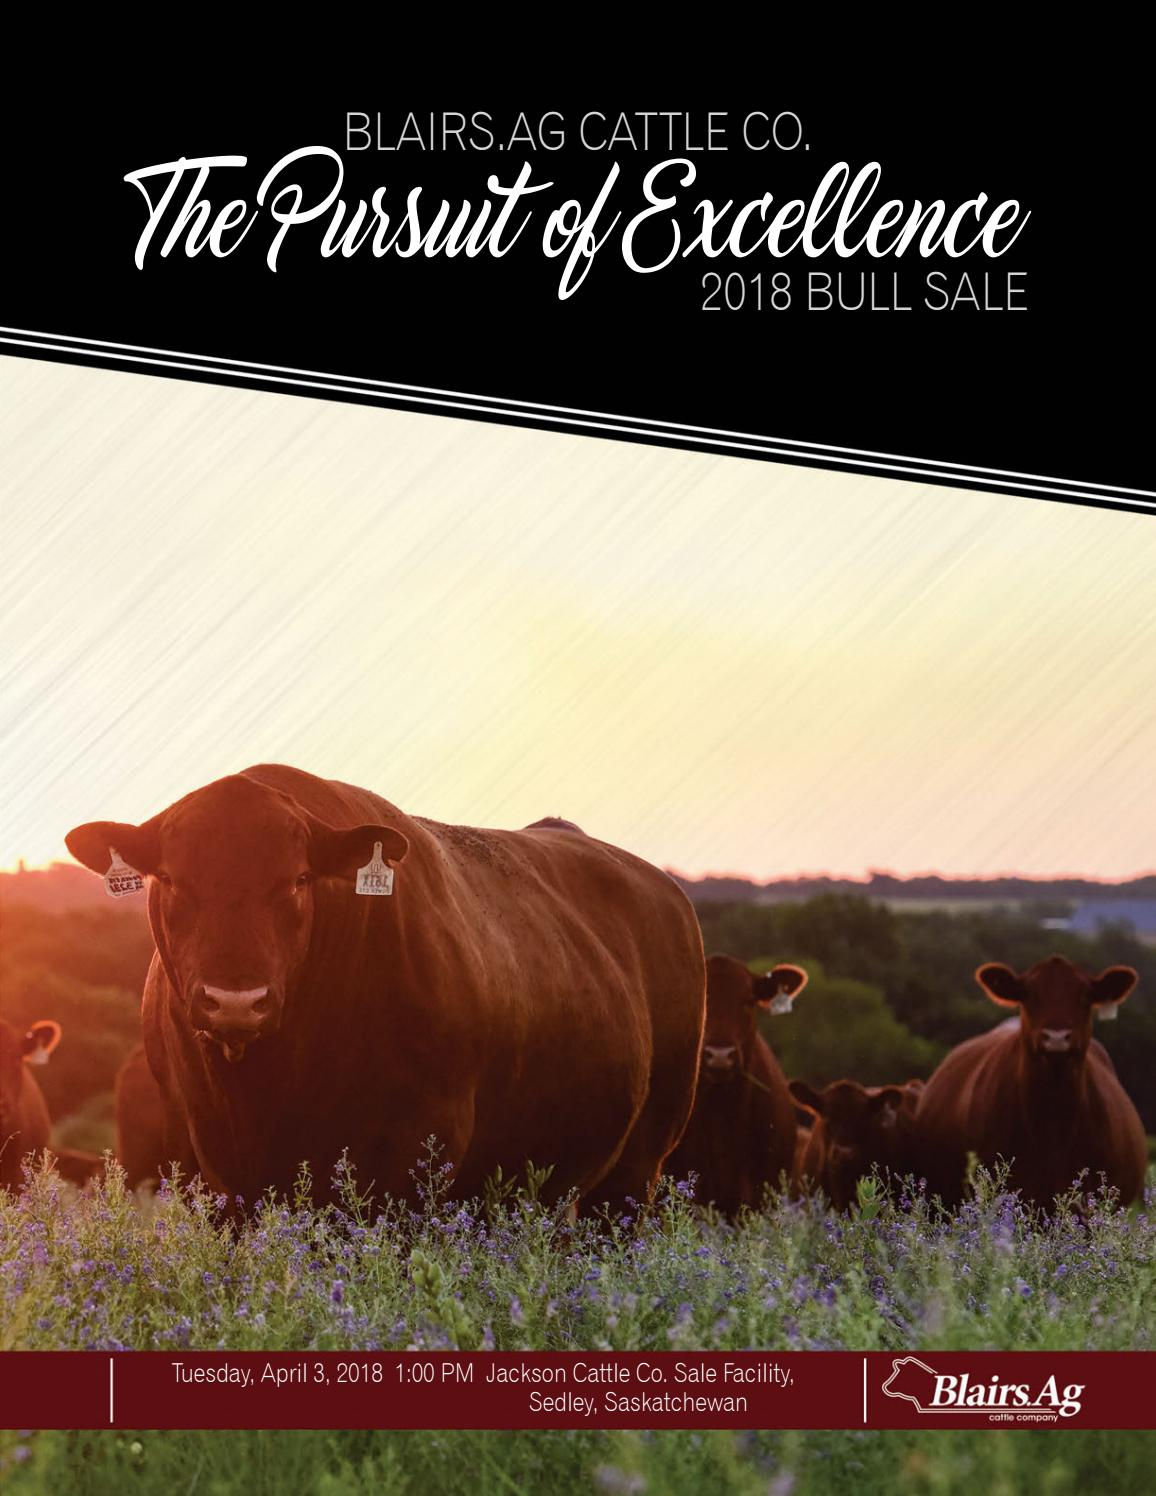 Blairs Ag Cattle Co  The Pursuit of Excellence Bull Sale